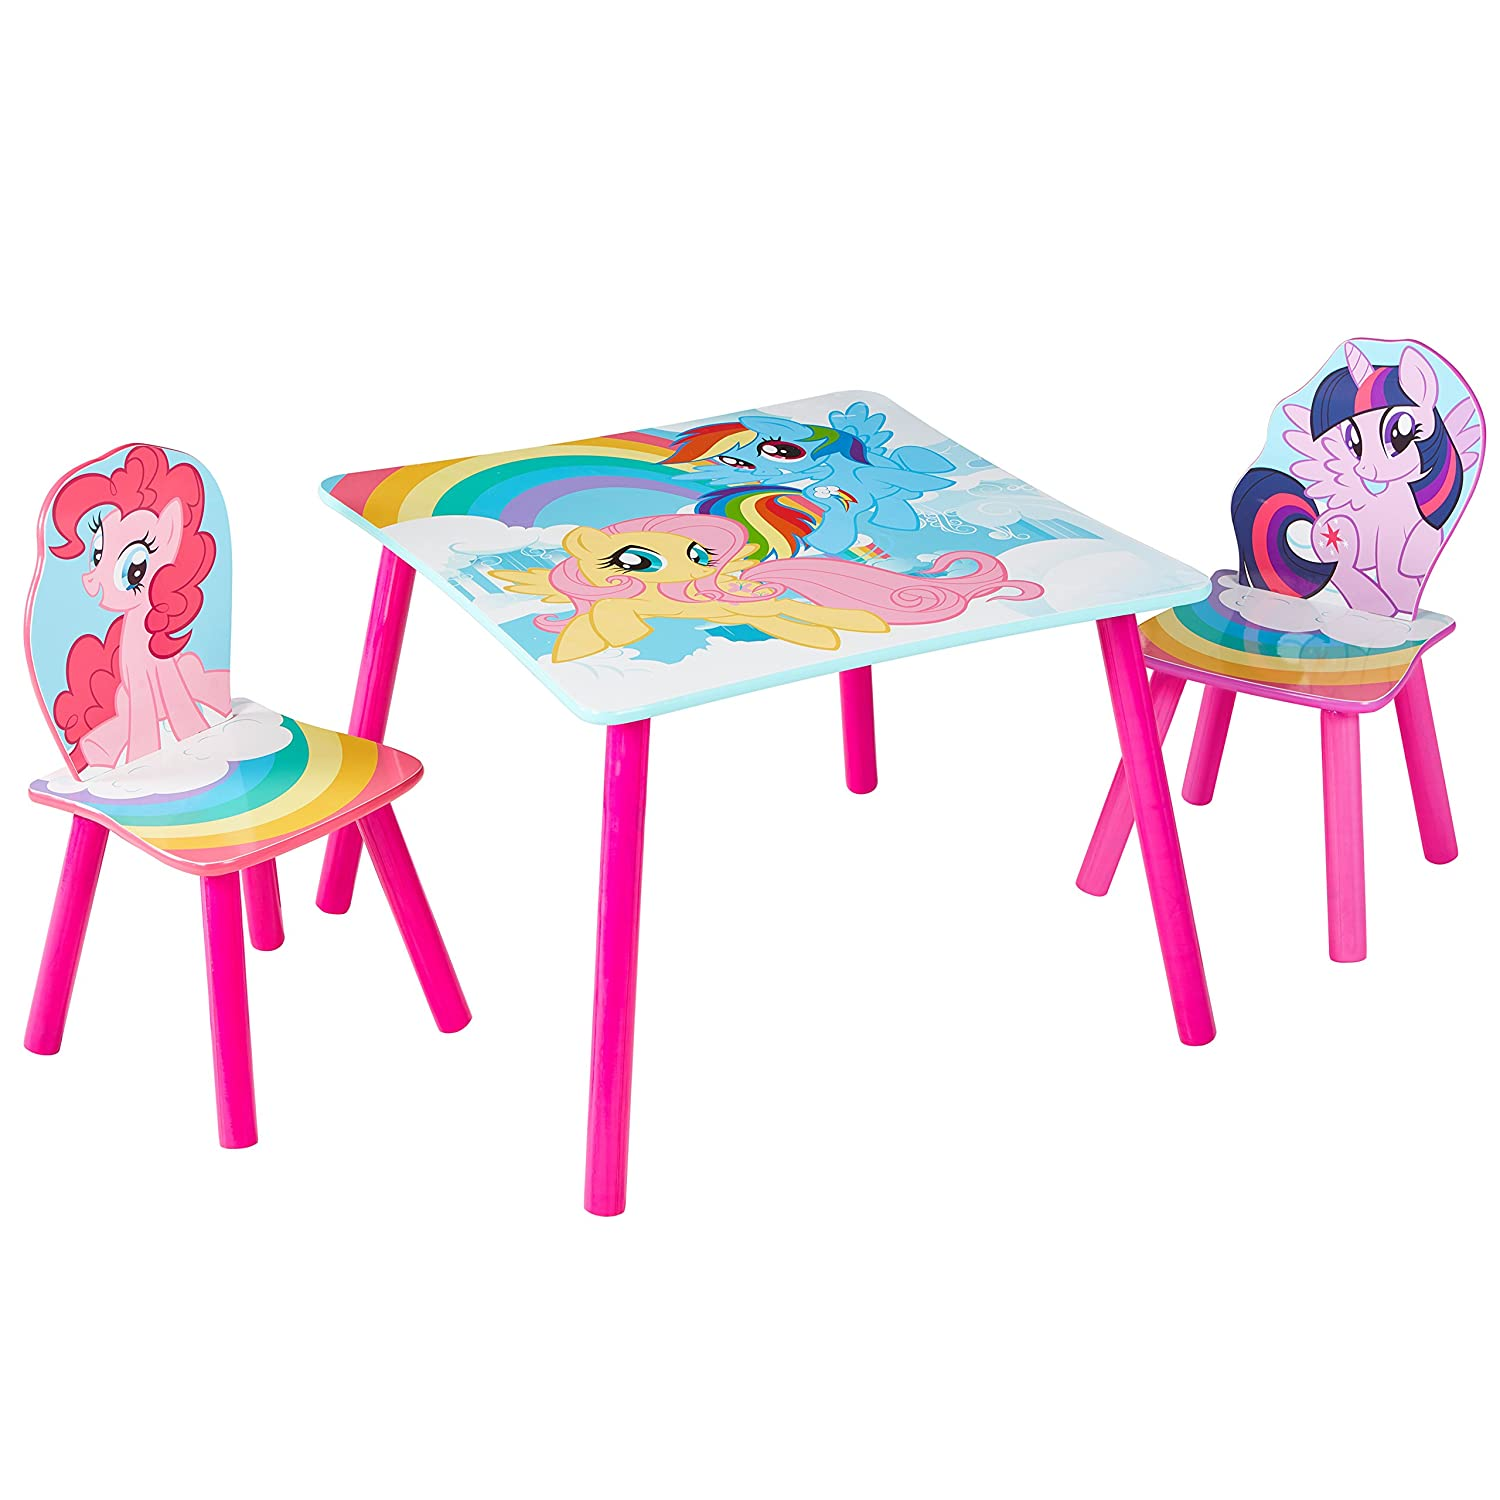 HelloHome My Little Pony Table and 2 Chairs Set, Wood, Pink, 63 x 63 x 45 cm Worlds Apart 527MLN